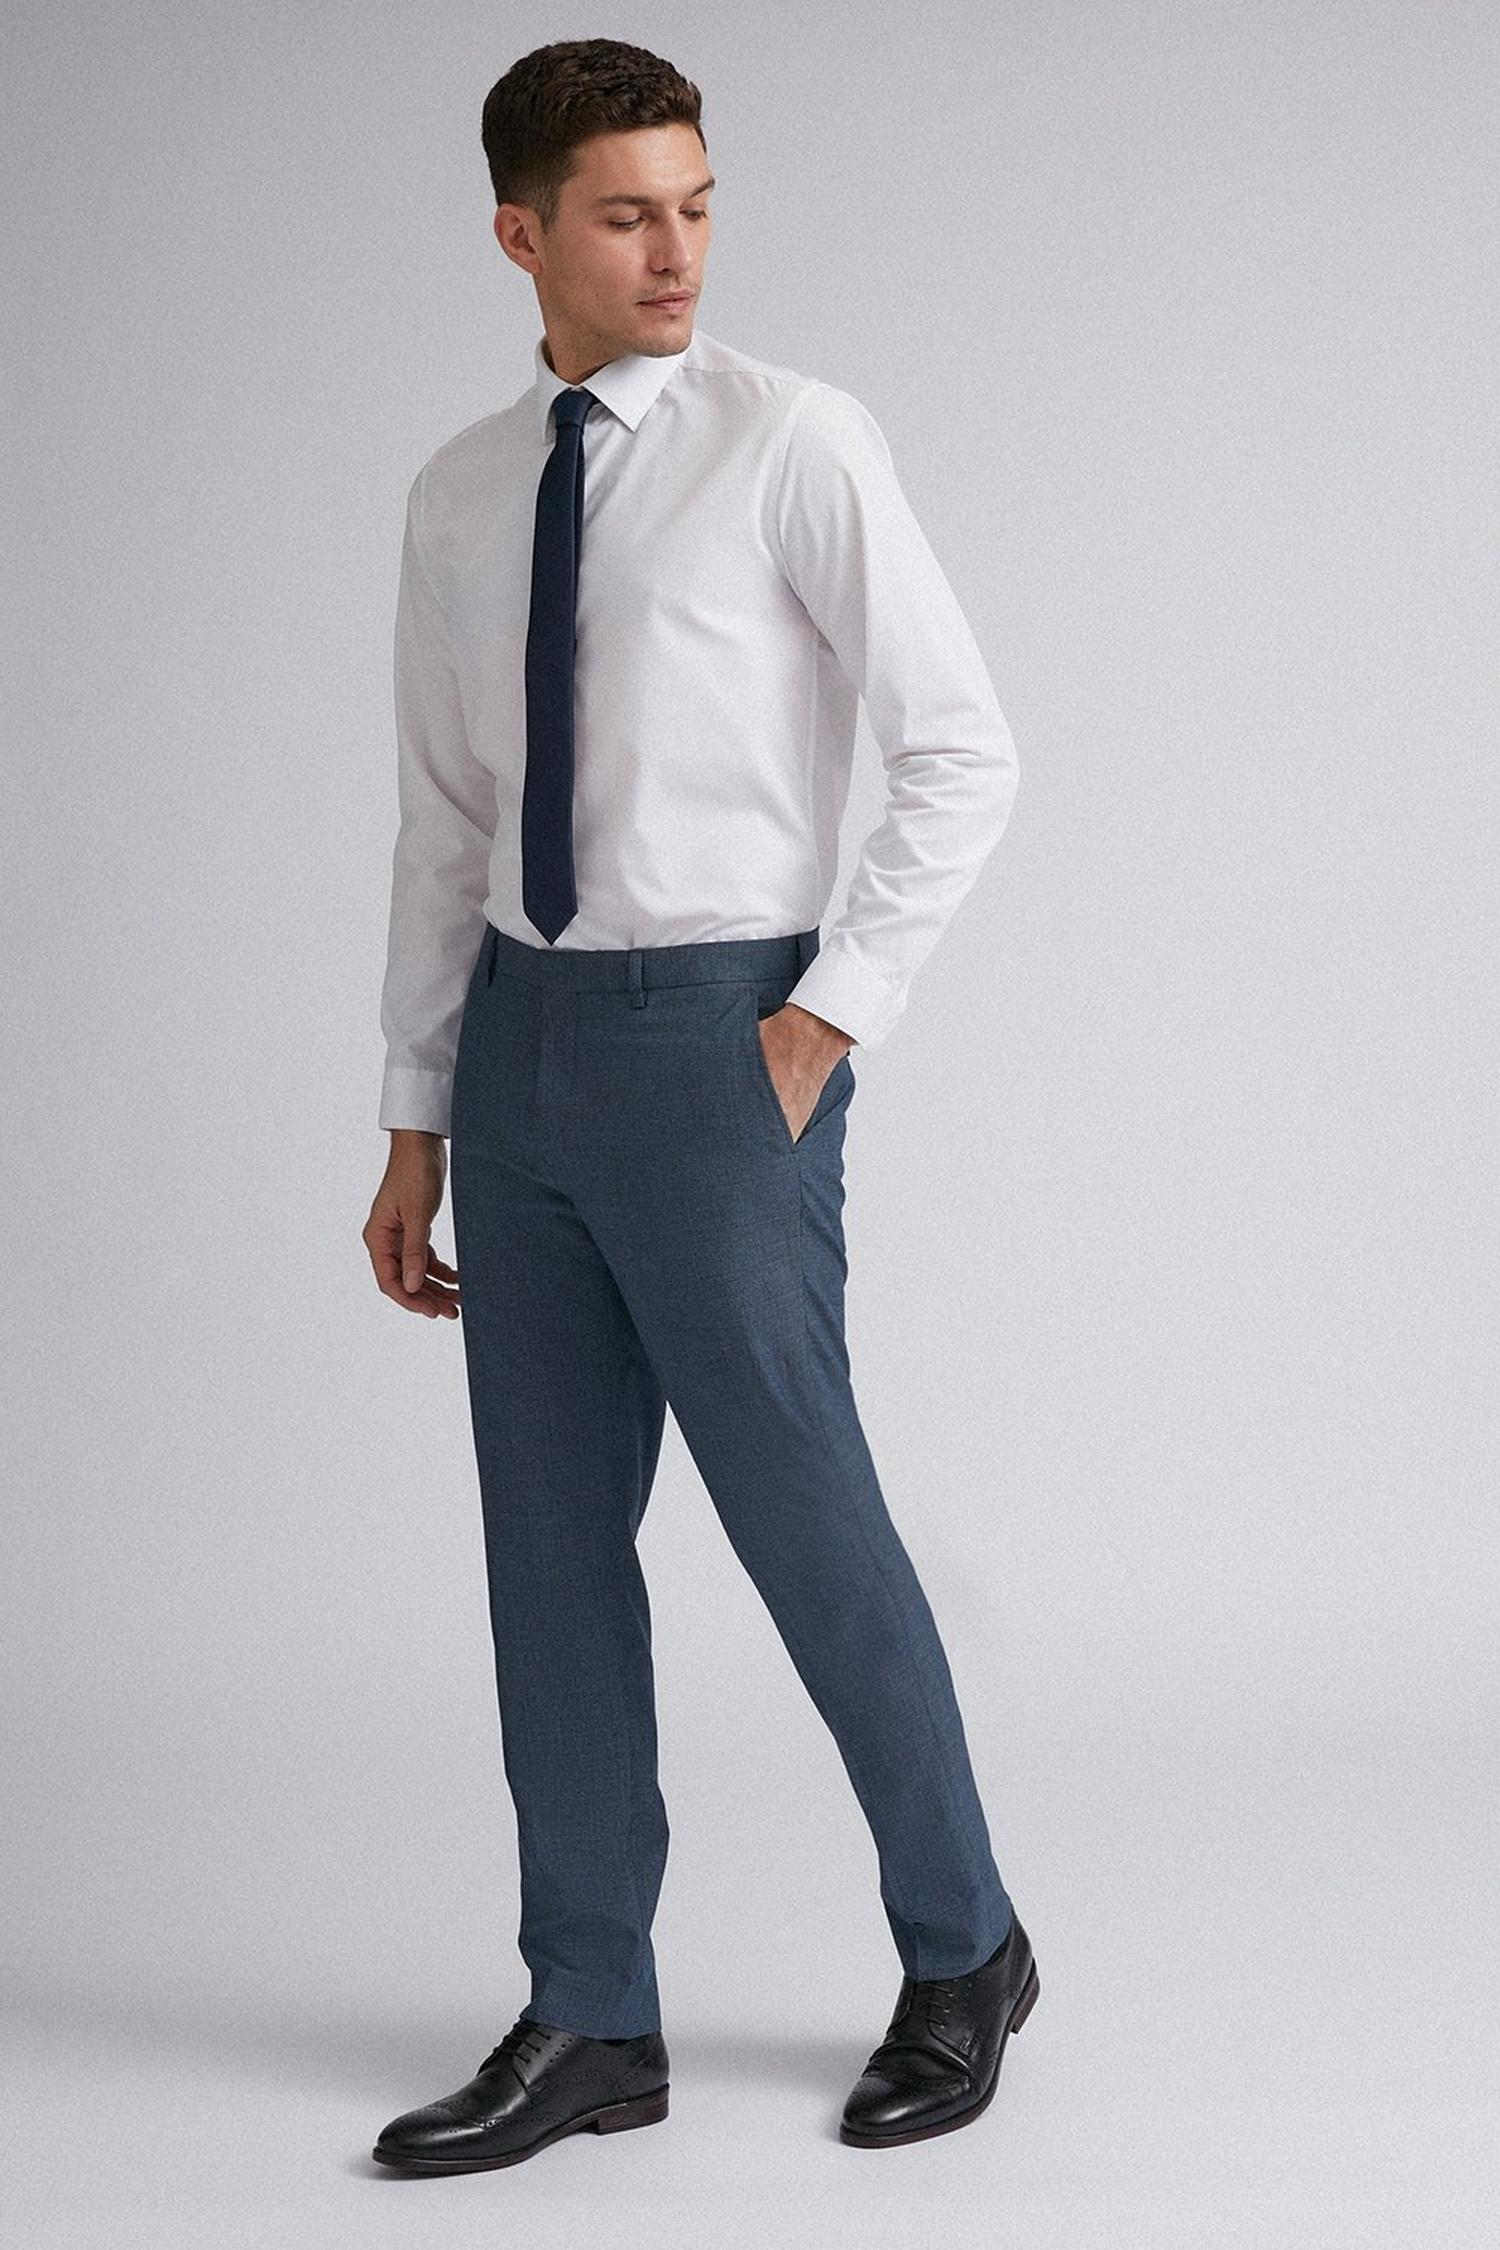 106 Blue Jaspe Check Slim Fit Suit Trousers image number 2